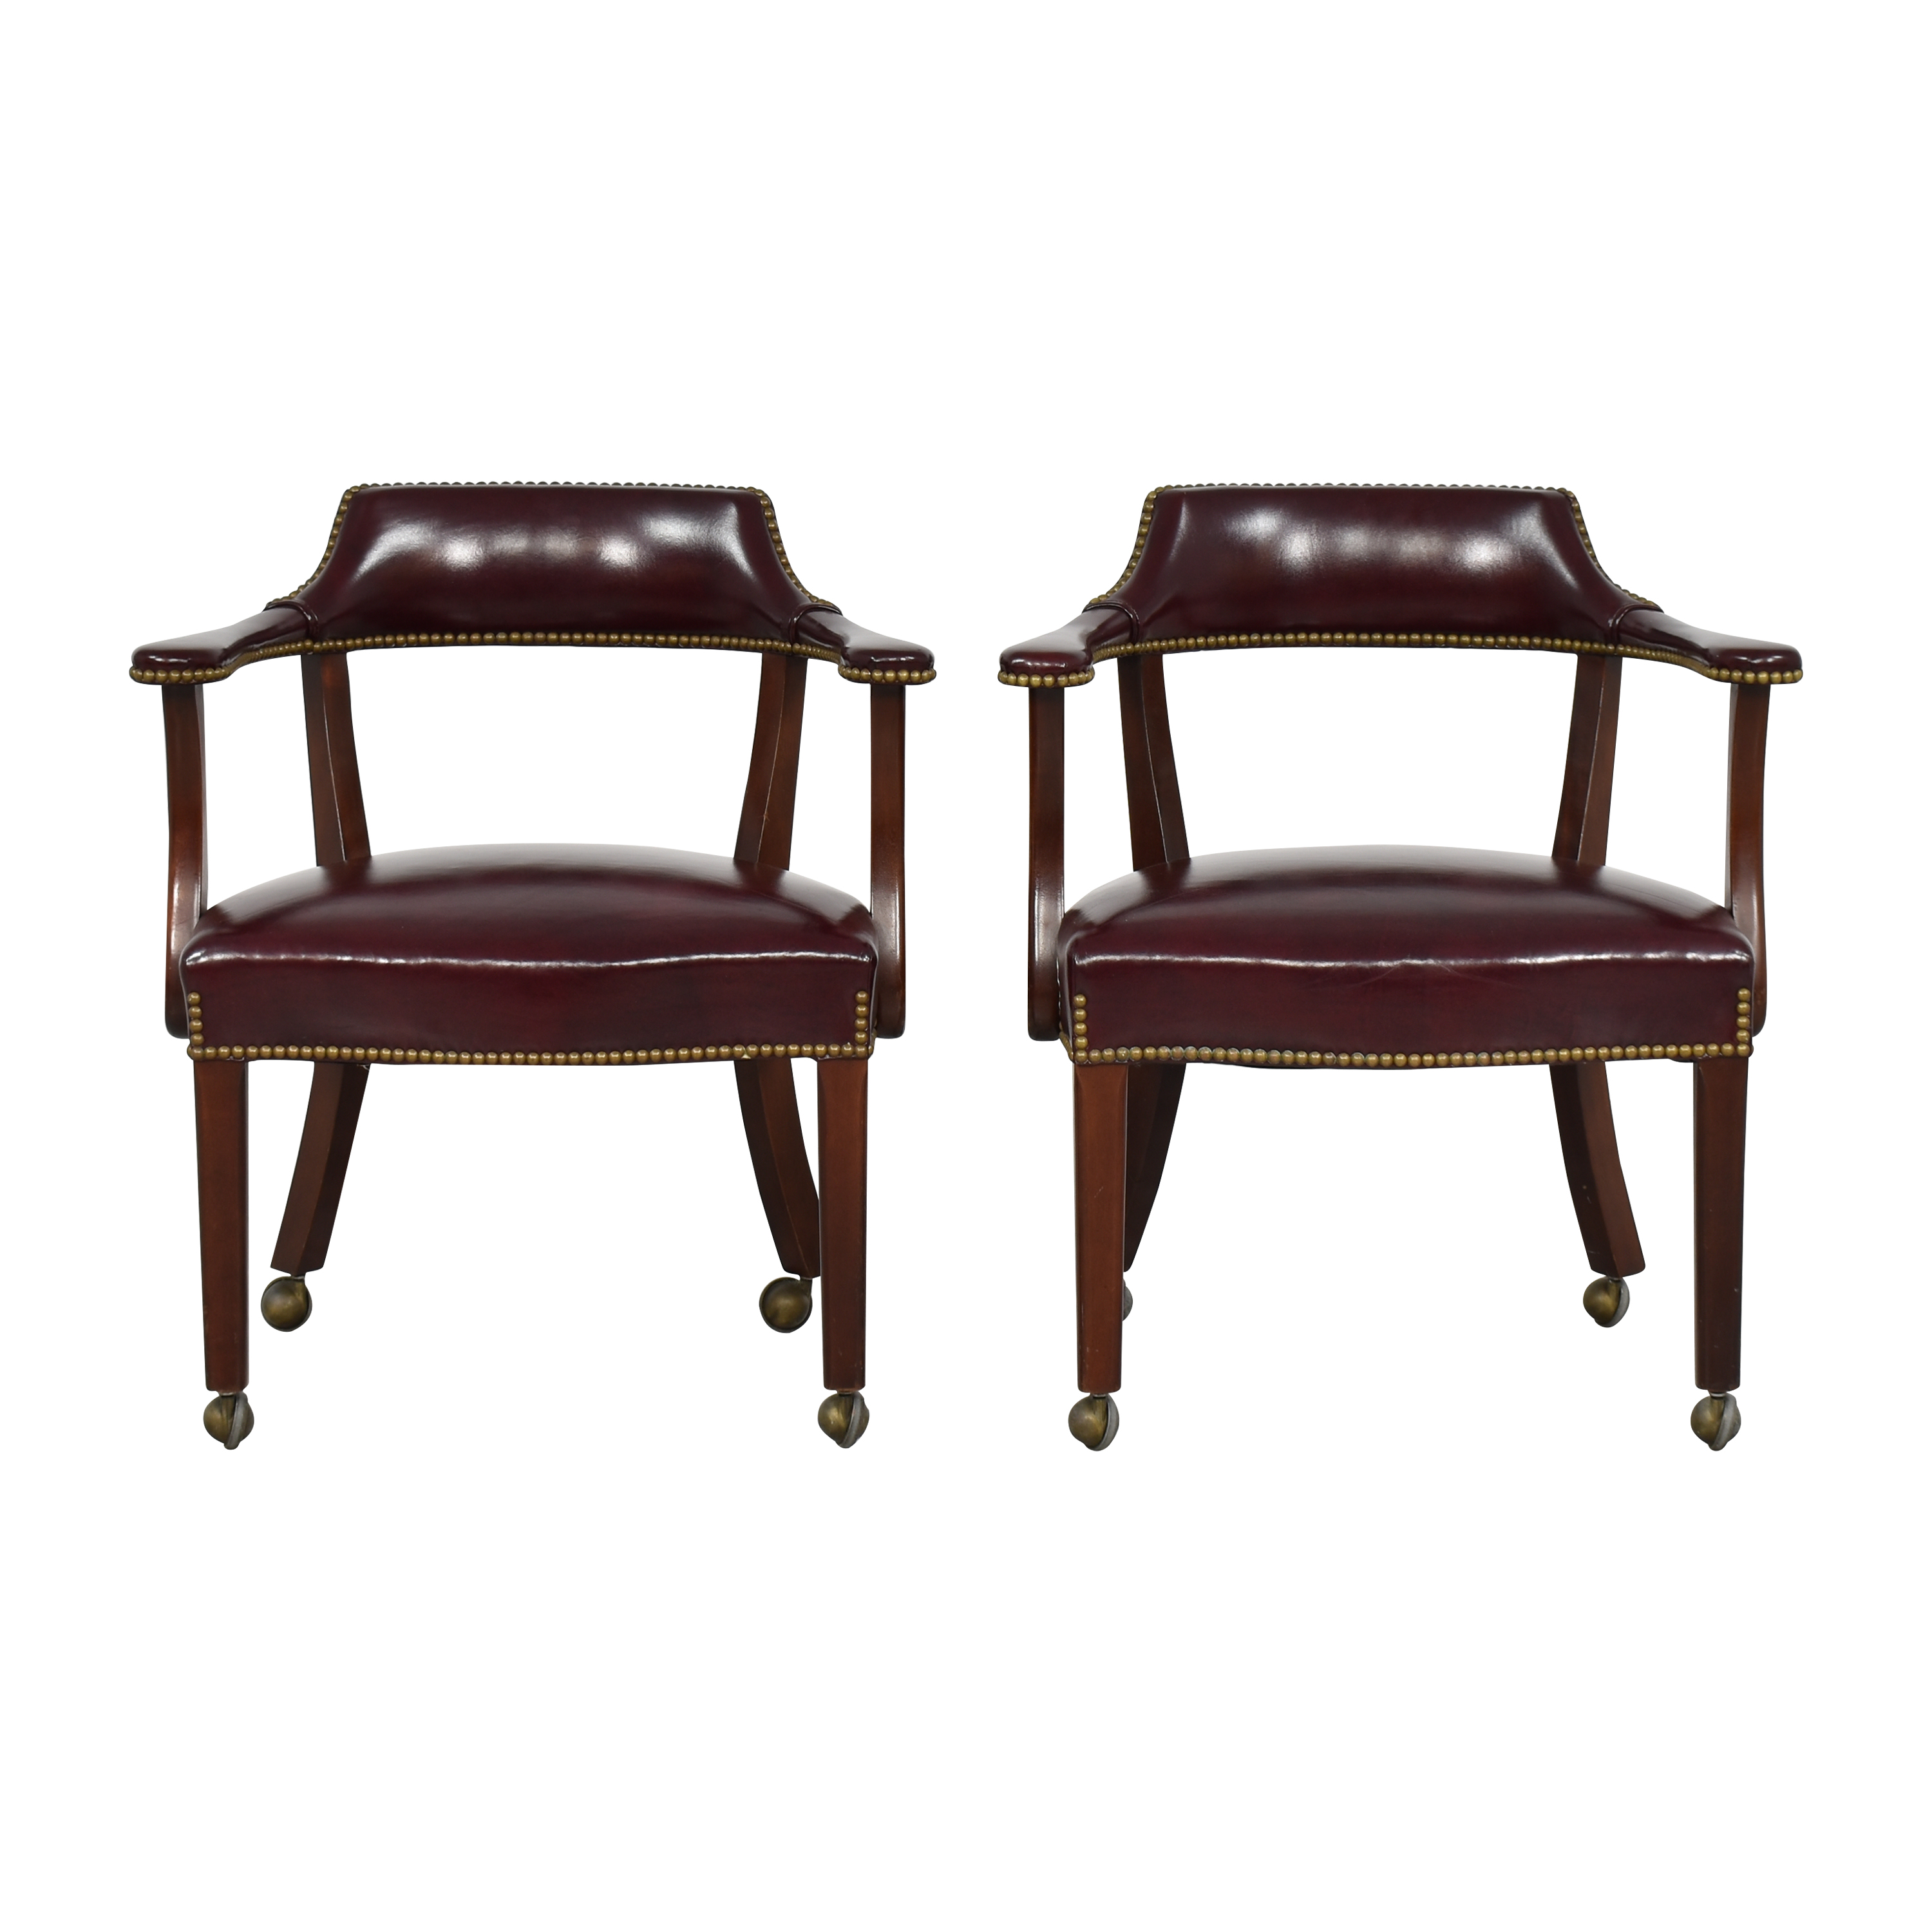 buy Hancock and Moore 1801 Captains Chairs  Hancock and Moore Chairs